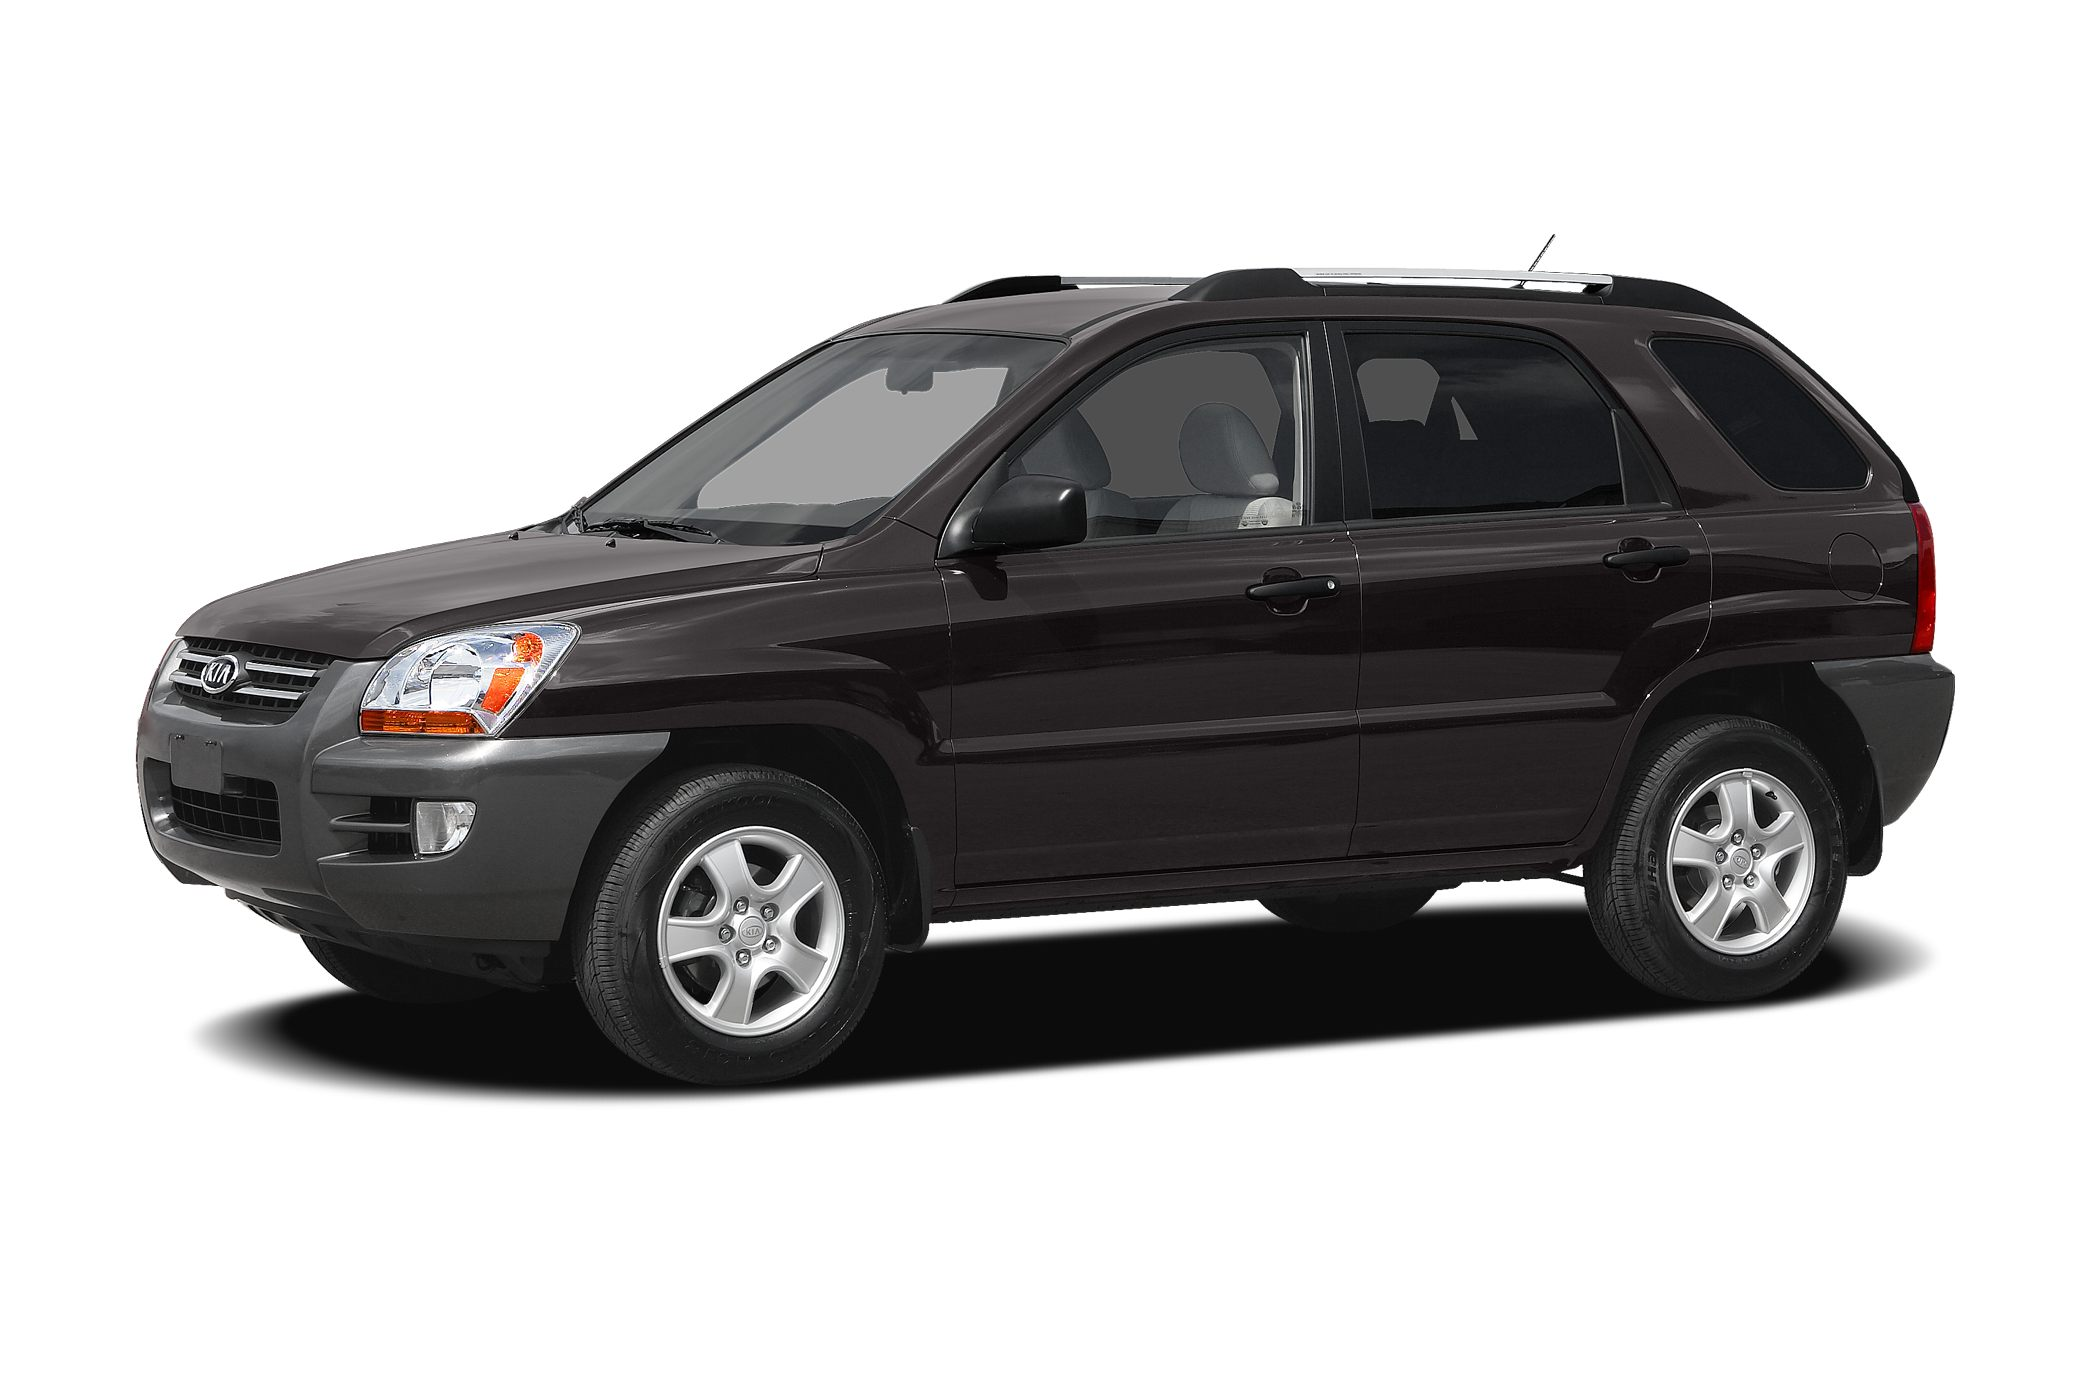 2006 Kia Sportage LX SUV for sale in Chicago for $8,495 with 100,429 miles